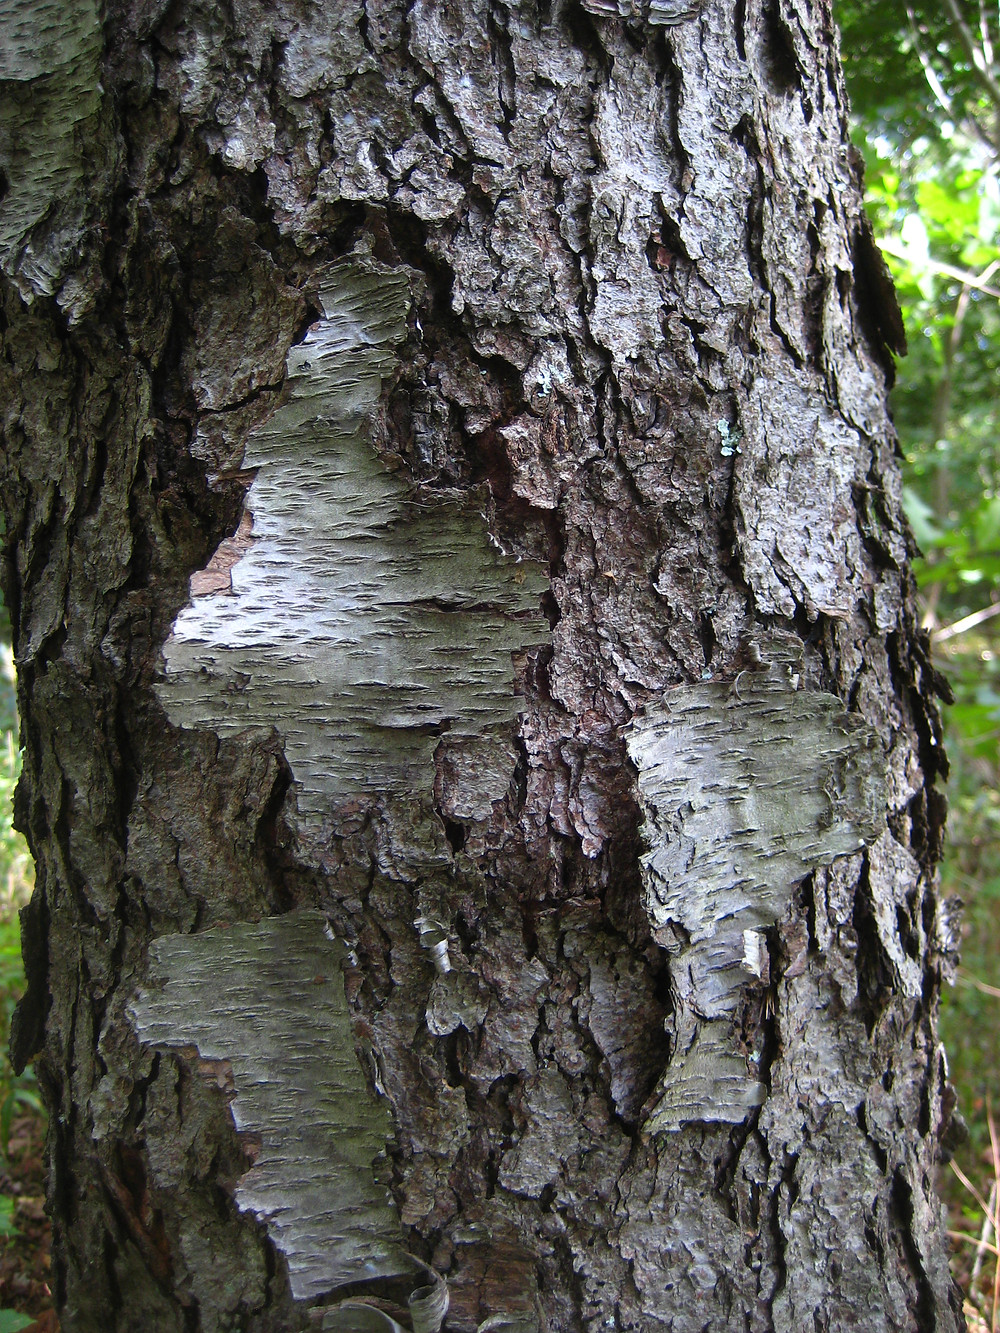 This specimen is shedding its young bark as it enters maturity.